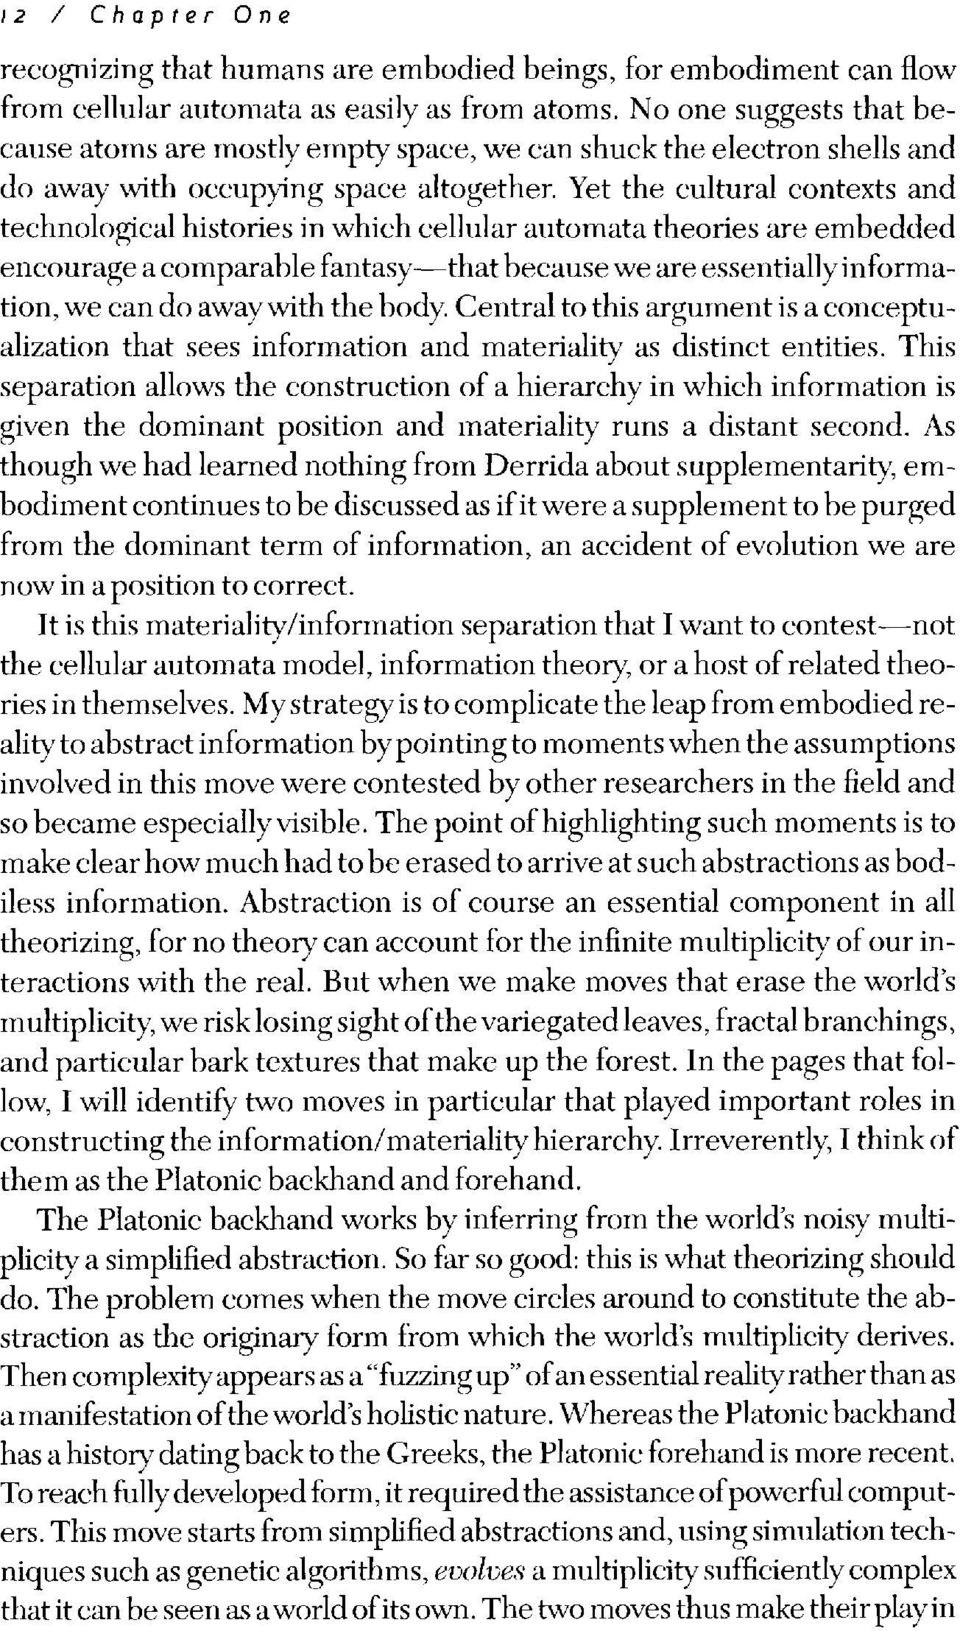 Yet the cultural contexts and technological histories in which cellular automata theories are embedded encourage a comparable fantasy-that because we are essentially inform a tion, we can do away